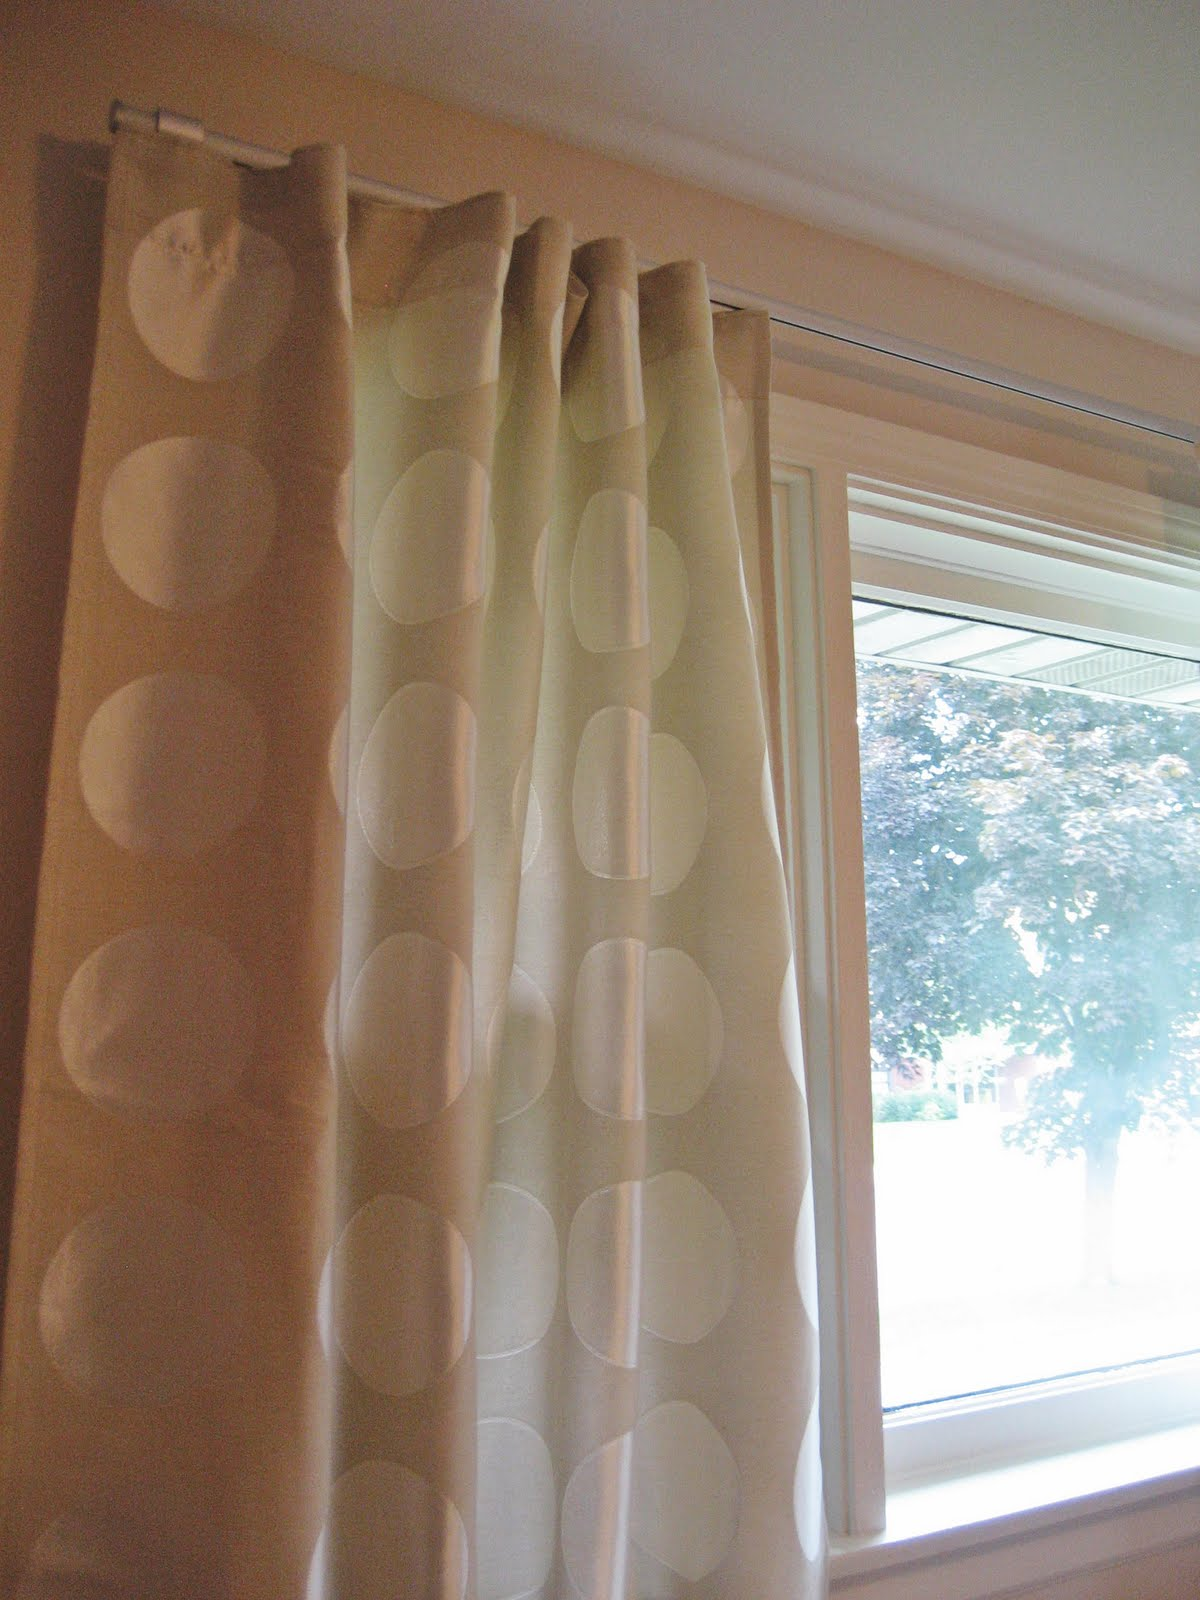 I Bought Two Pairs Of Ninni Rund Curtains And The Kvartal Curtain Track  System (3 Single Track Rails, 1 Corner Piece, 5 Brackets, And 2 Sets Of  Gliders).